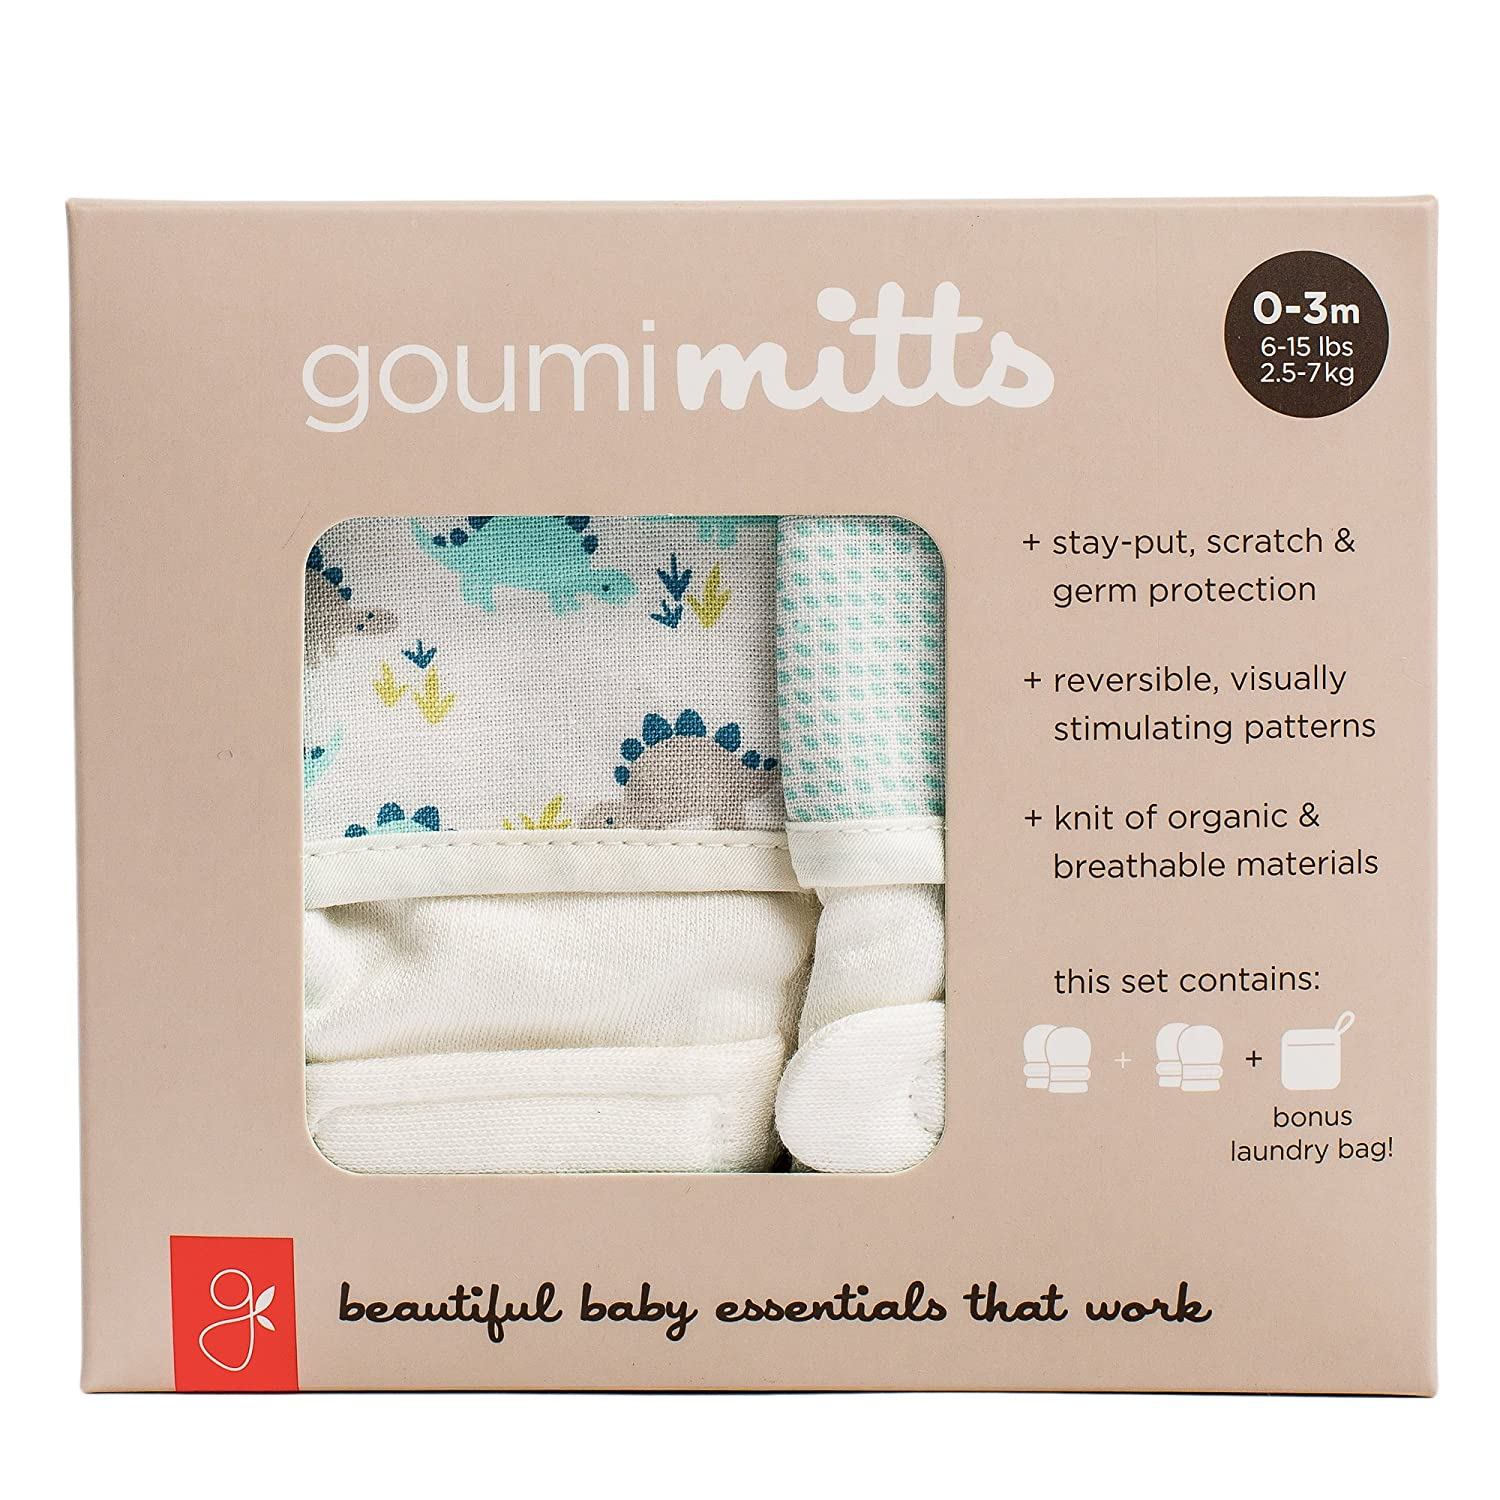 goumimitts Soft Stay On Scratch Mittens -Stop Scratches and Germs, 2 Pack (0-3 Months, Dino - Drops/Aqua) Goumikids